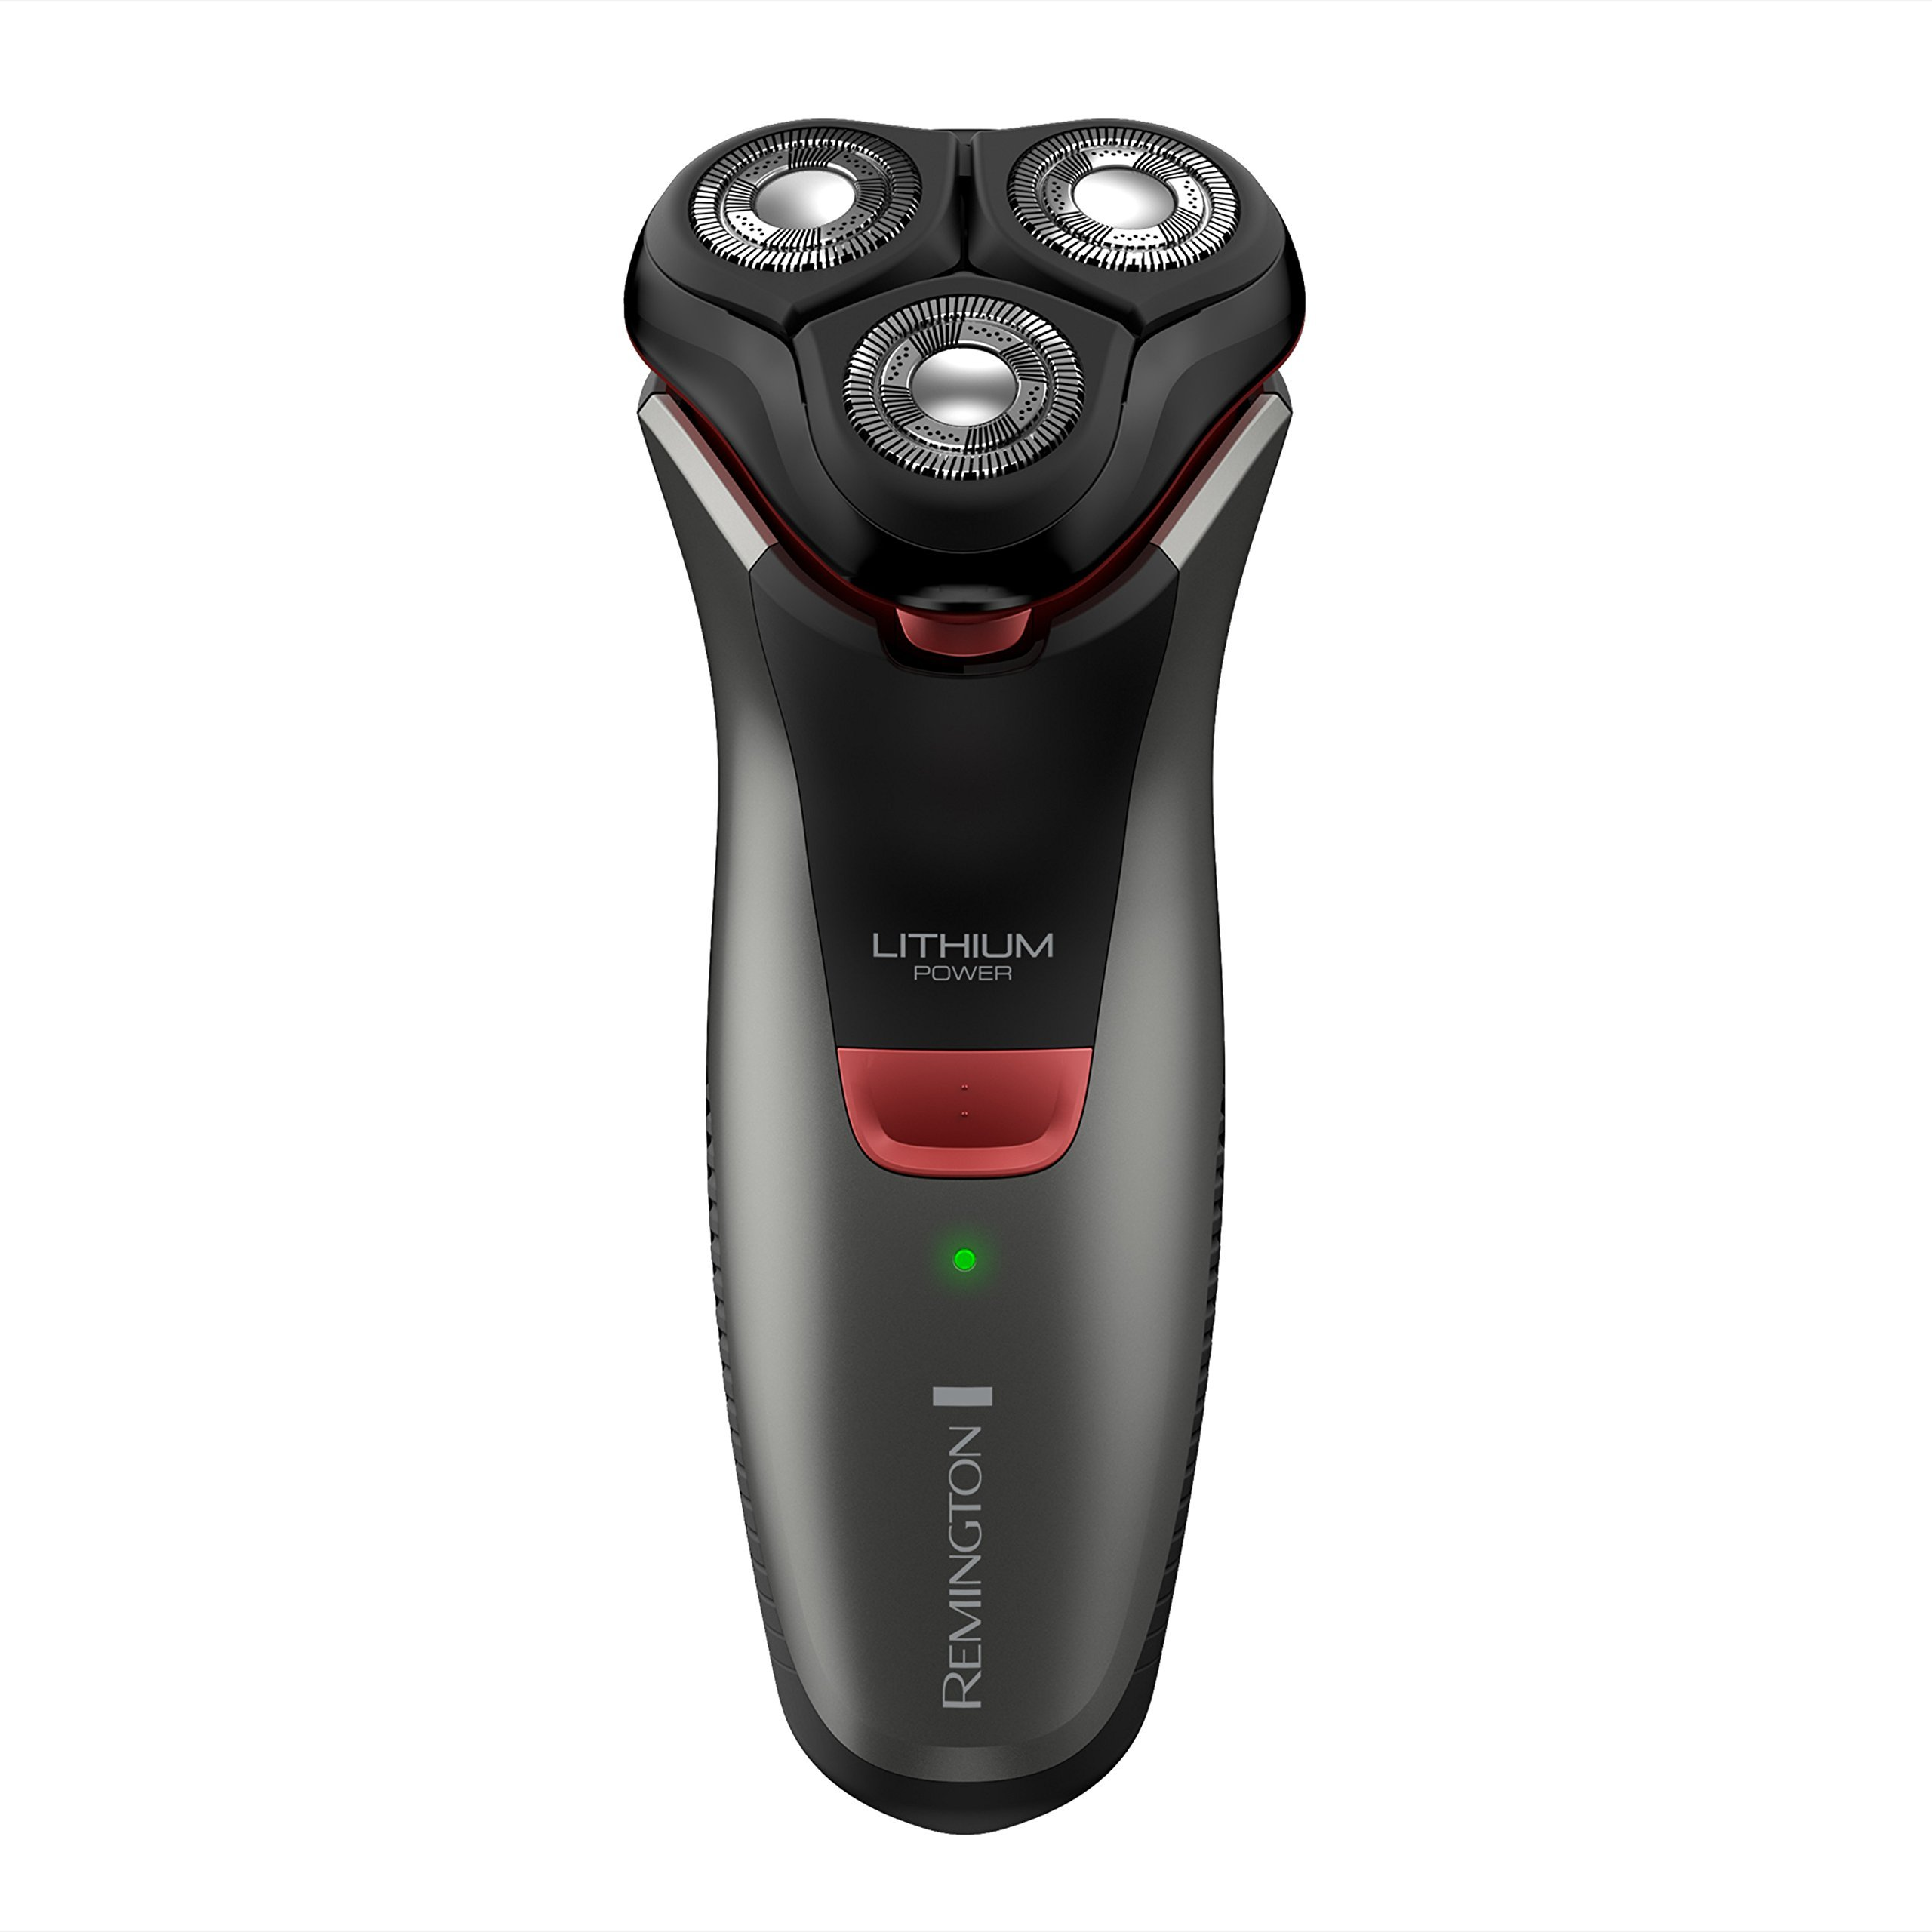 Remington R4000 Series Electric Rotary Shaver, Fully Washable, Black/Red, PR1340 (Certified Refurbished)